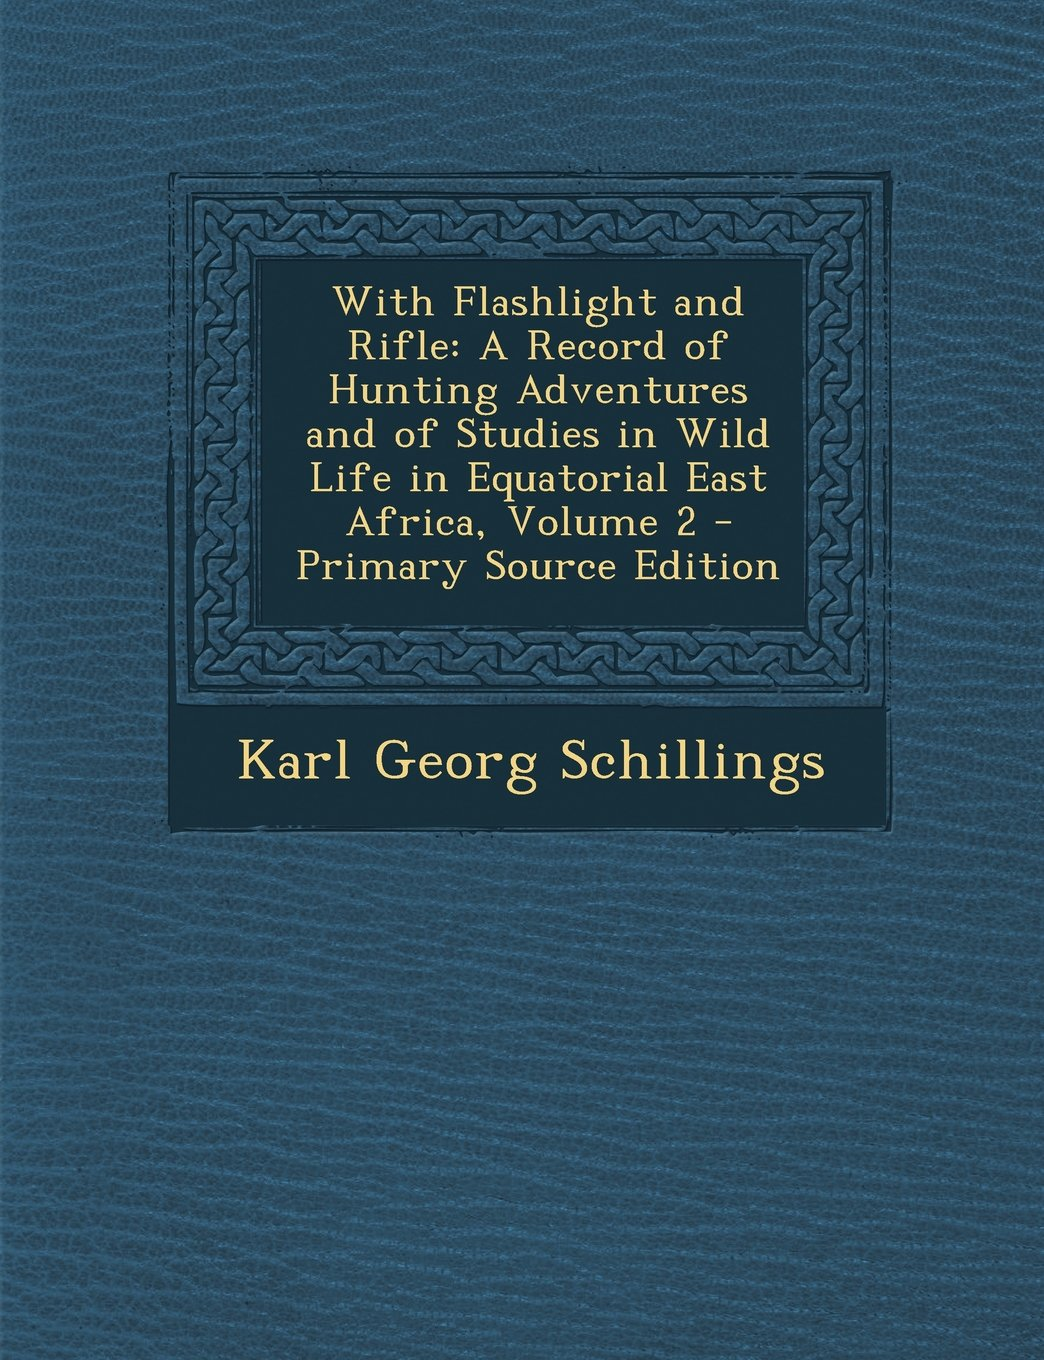 With Flashlight and Rifle: A Record of Hunting Adventures and of Studies in Wild Life in Equatorial East Africa, Volume 2 ebook